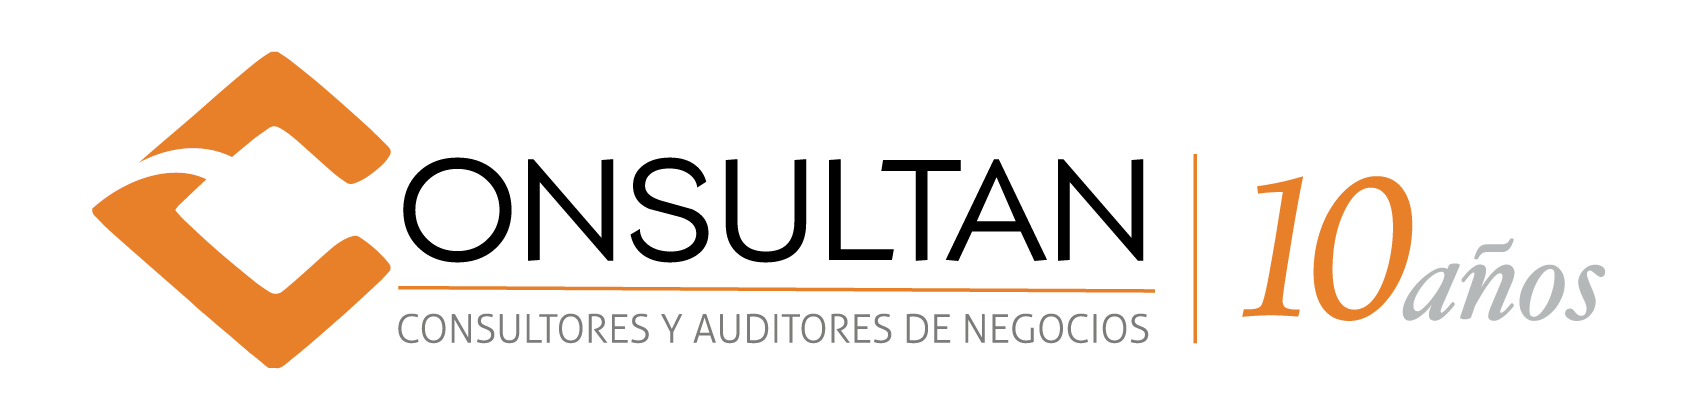 Consultan Auditores